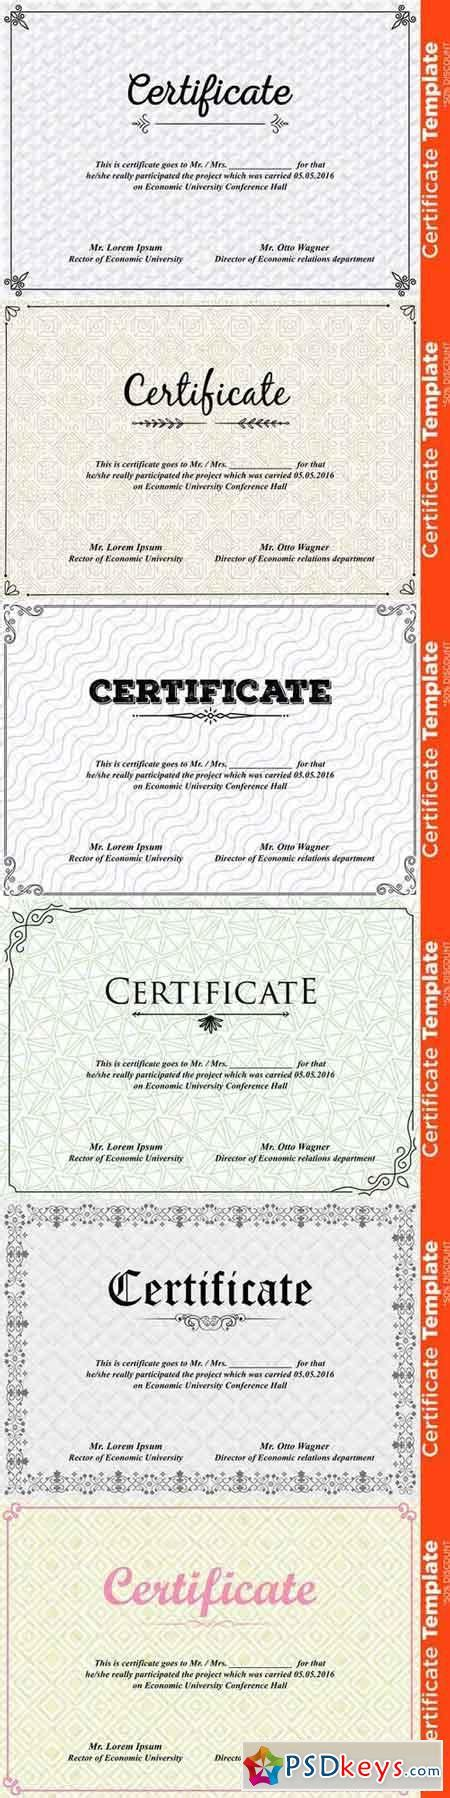 certificate template psd 677908 187 free download photoshop